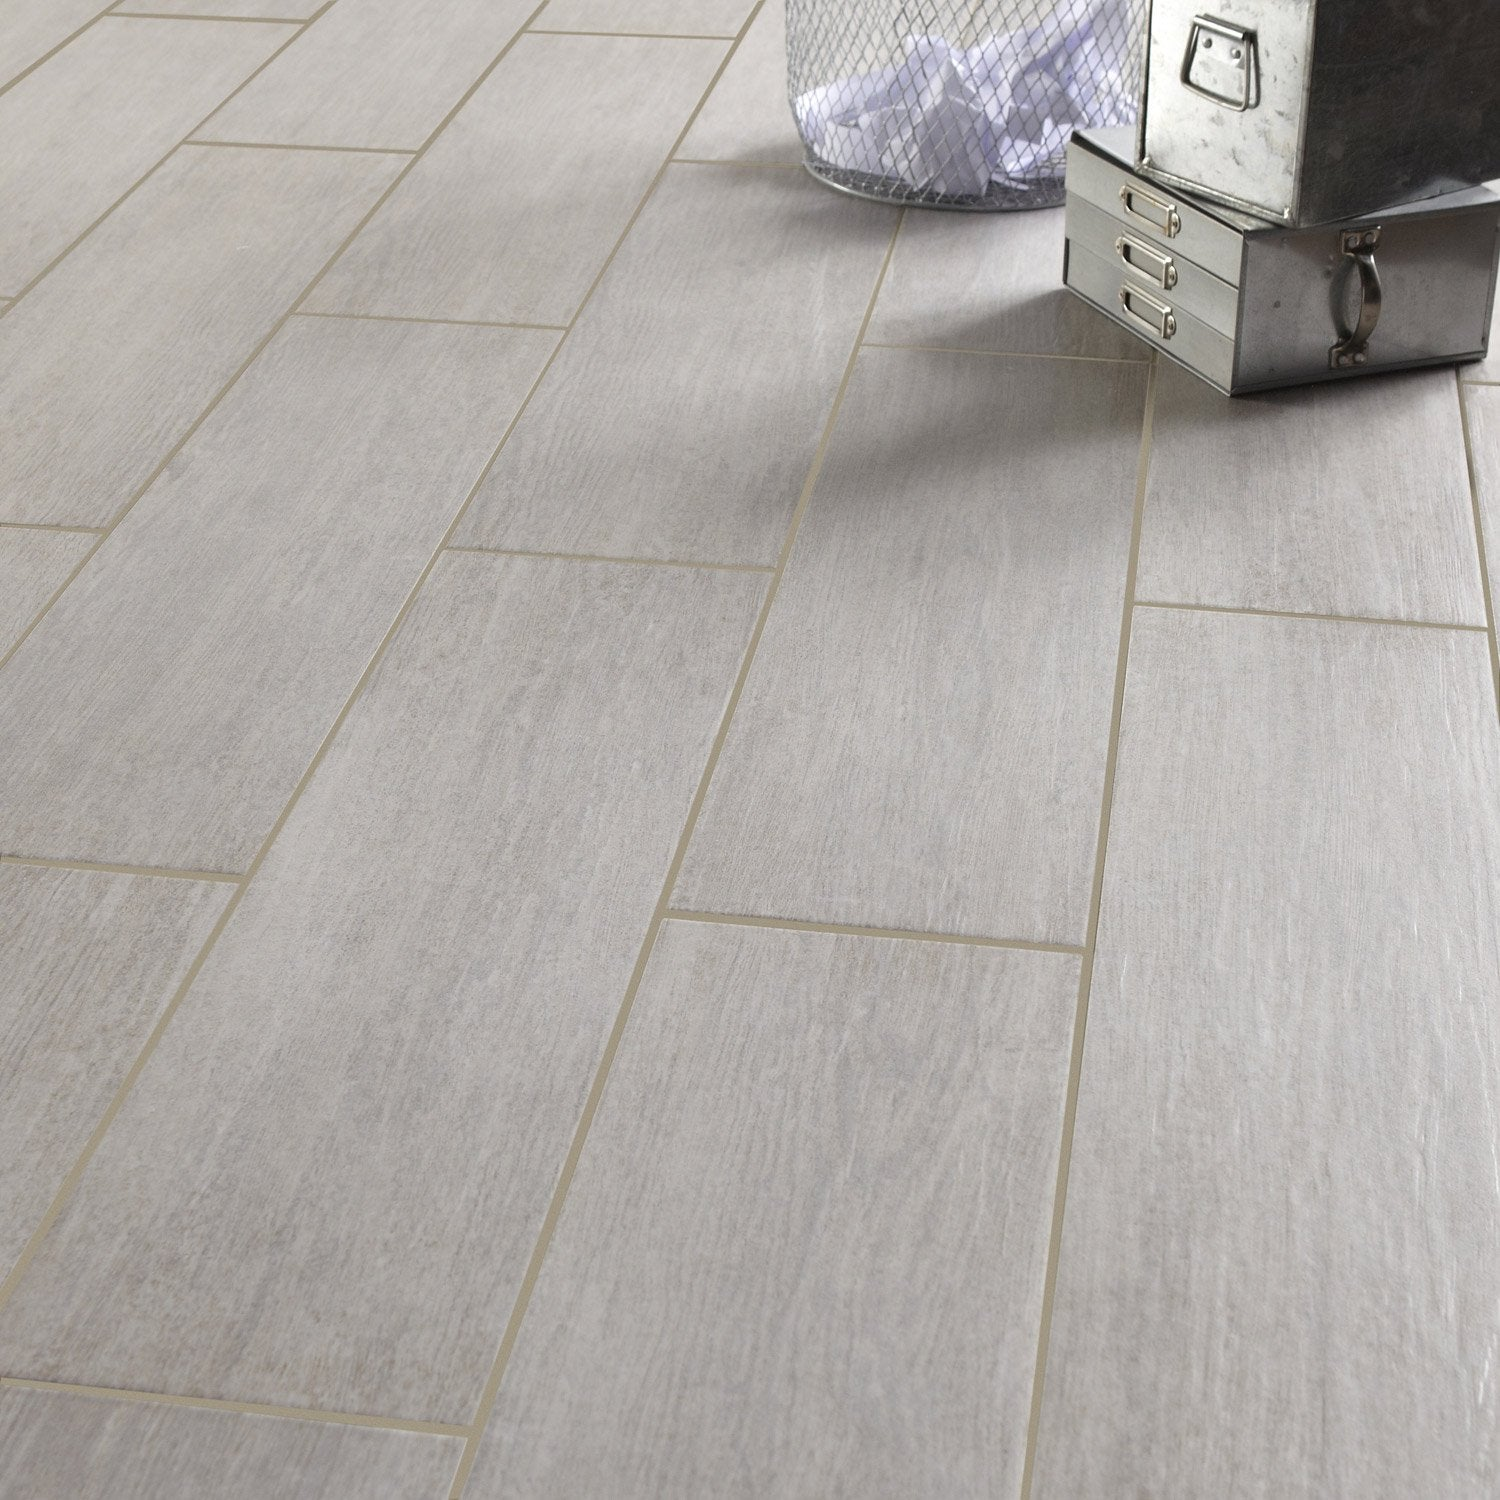 Carrelage imitation parquet gris leroy merlin 28 images for Carrelage imitation bois castorama